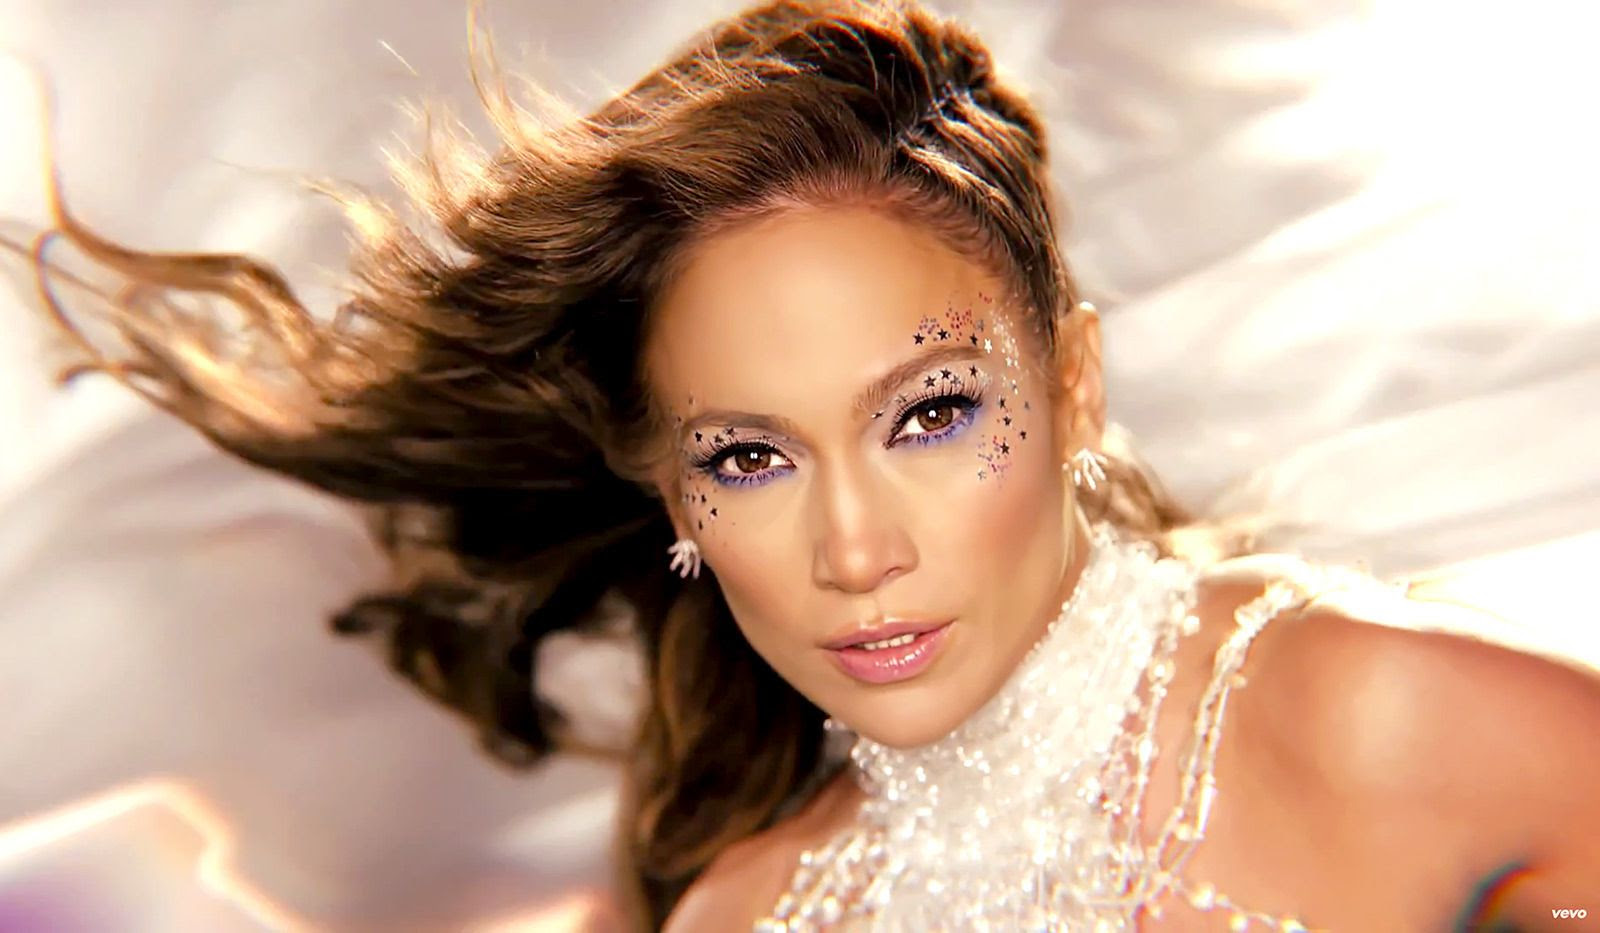 Jennifer Lopez : Feel the Light (Video) photo 1426883370_jennifer-lopez-feel-the-light-zoom.jpg